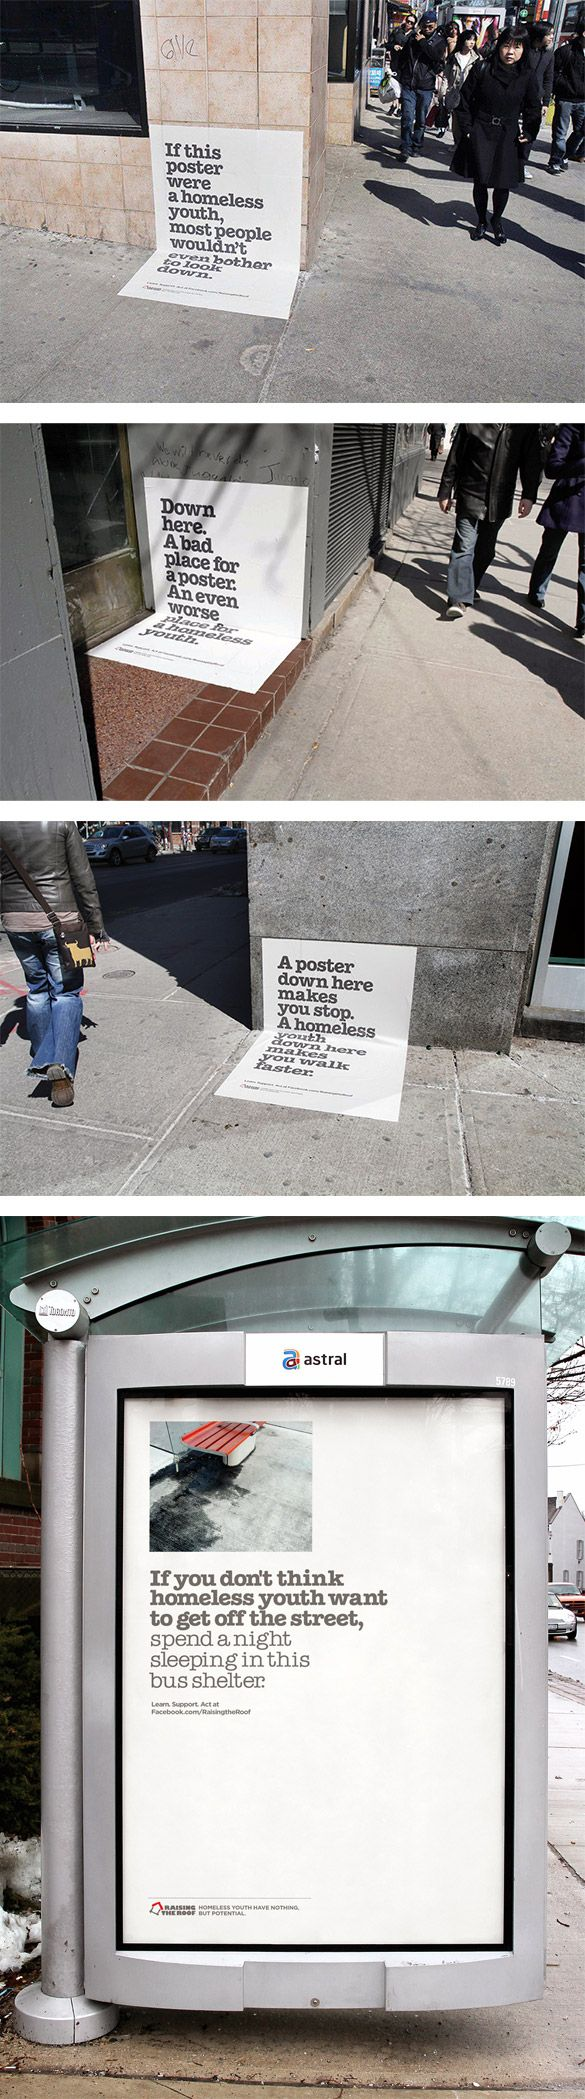 Poster campaign for homeless youth